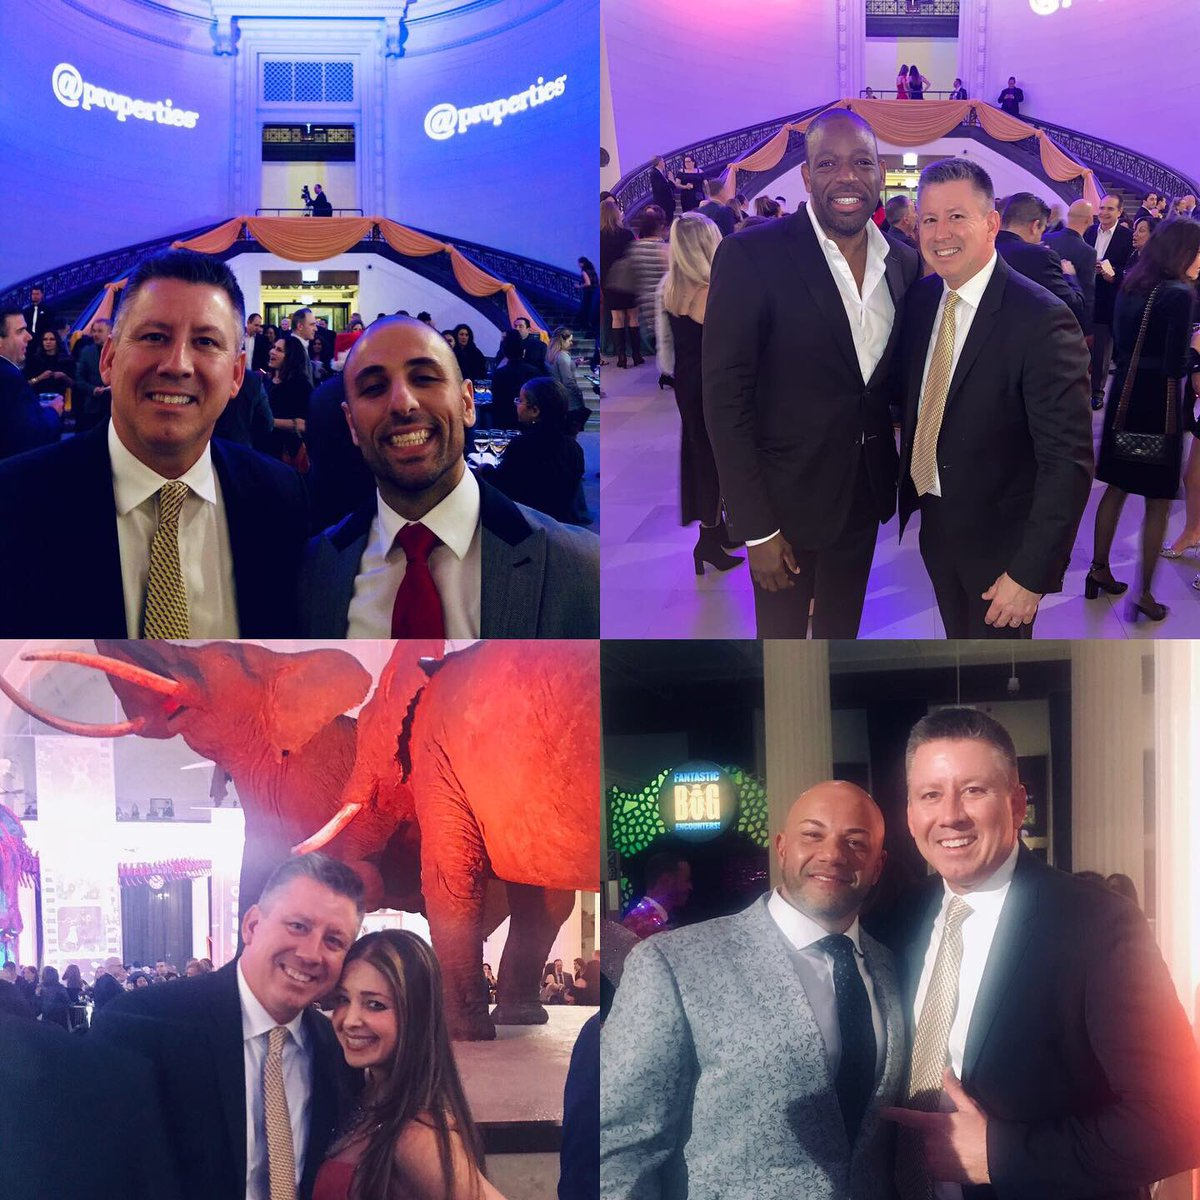 Celebrating with a few thousand friends at @properties Holiday Party at the Field Museum.  Great seeing you all.  Peace & prosperity in 2020!  Thank you Mike & Thad for another outstanding event!   #atproperties #holiday #party #fieldmuseum #chicago #lovewhereyouwork